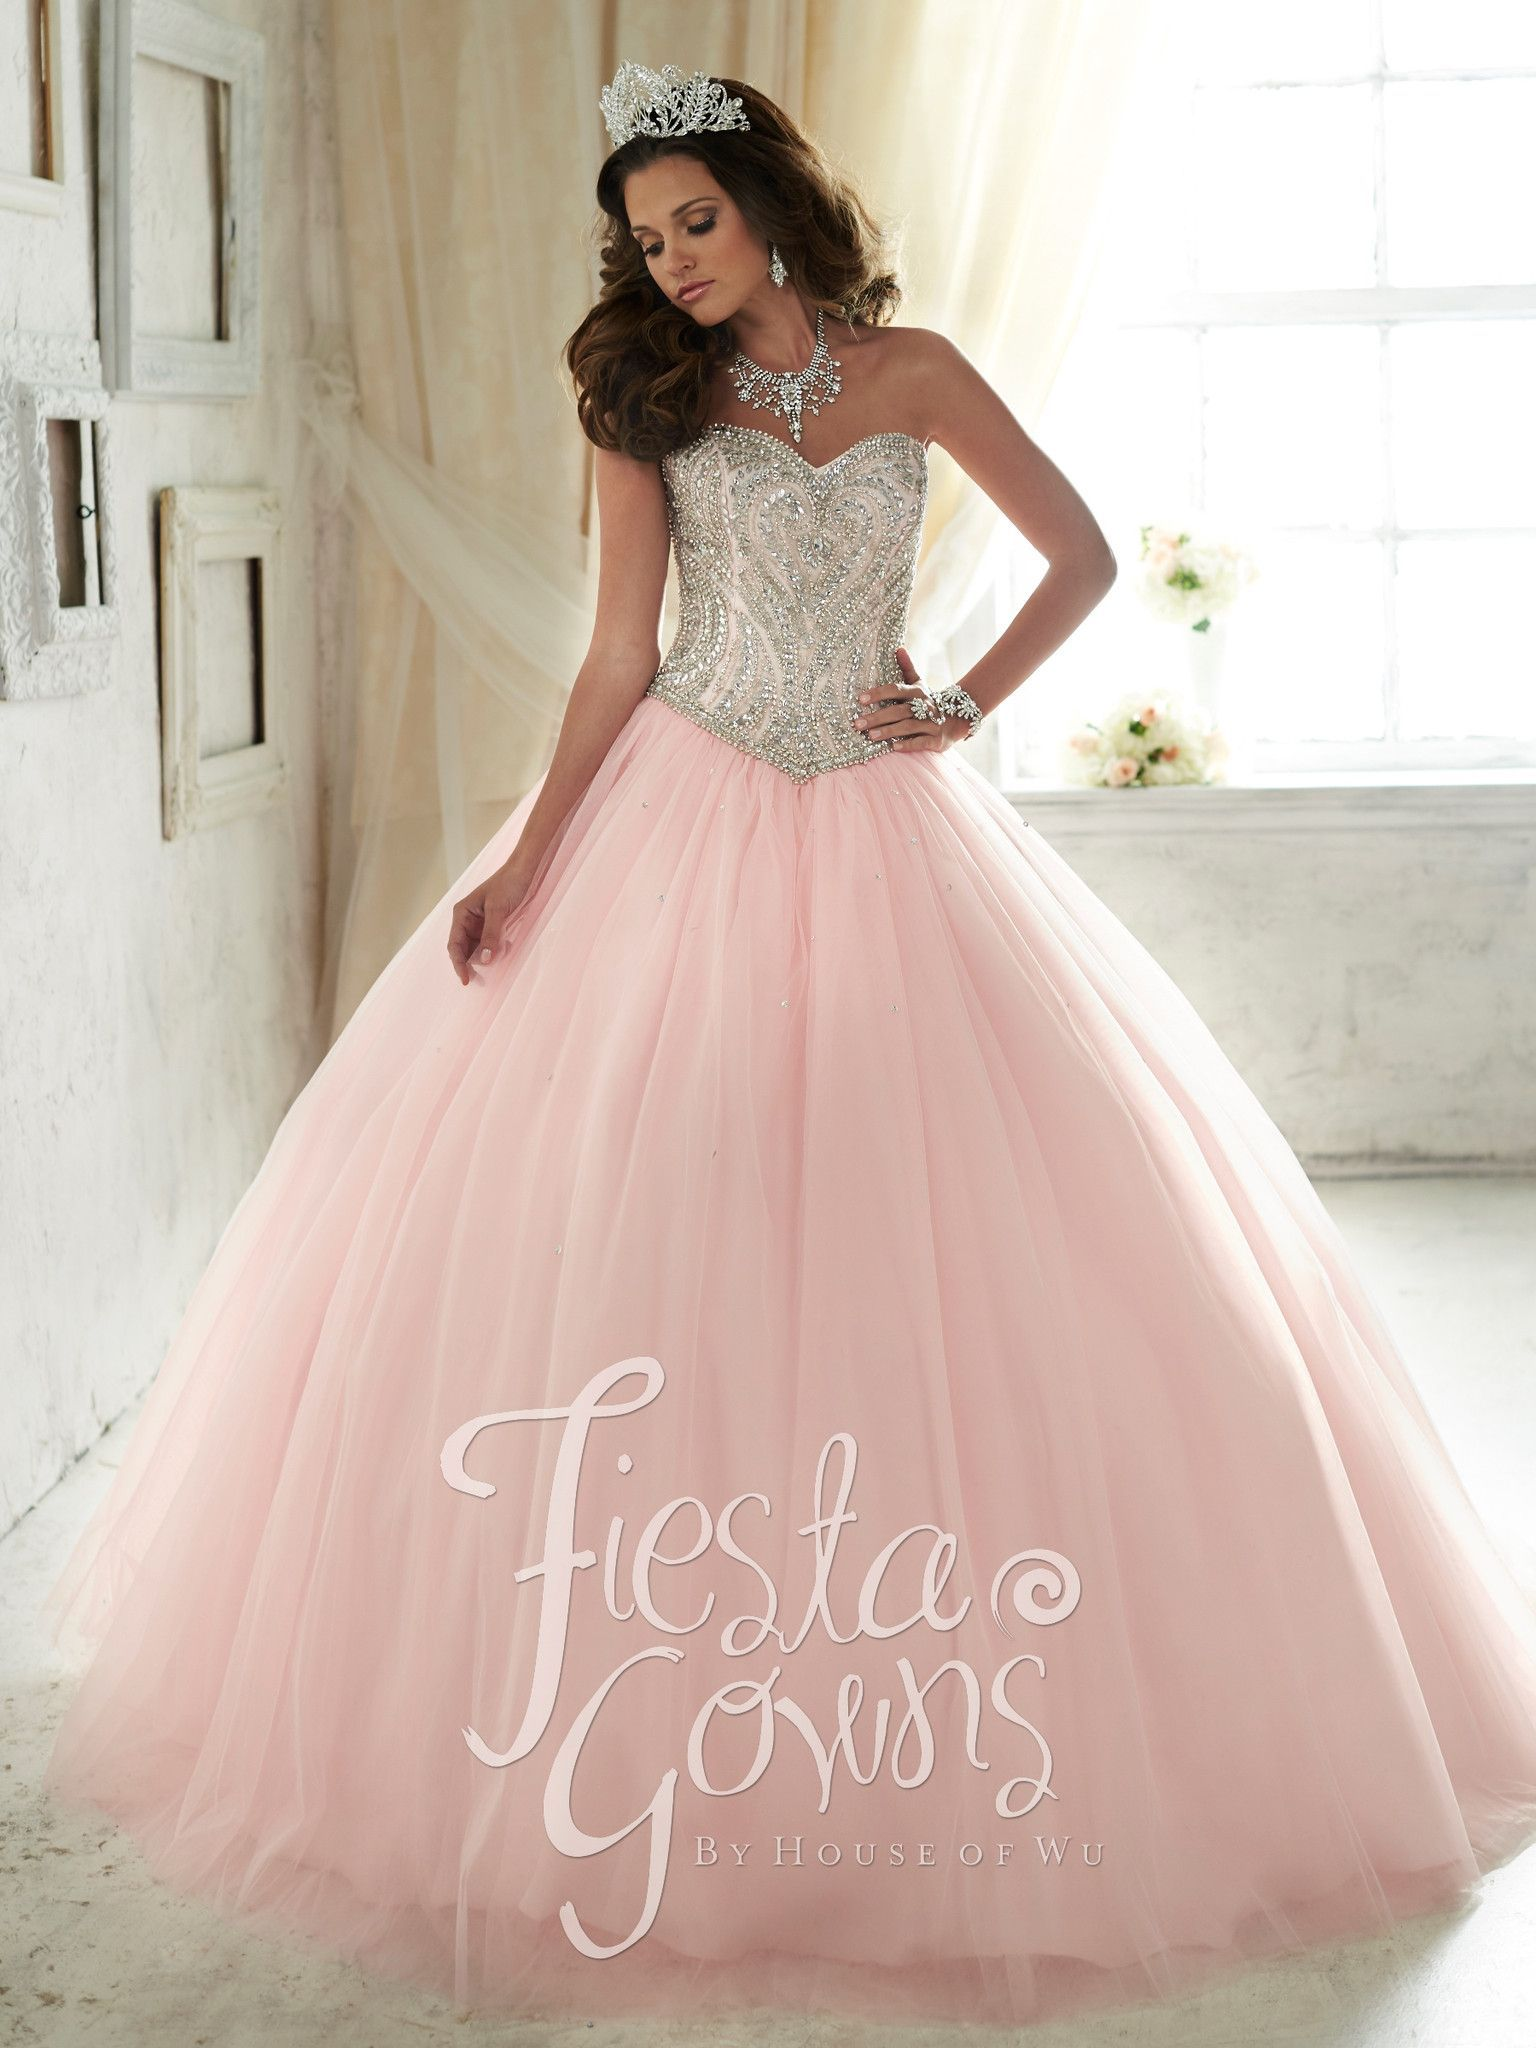 Beaded Strapless Dress by House of Wu Fiesta Gowns Style 56290 ...